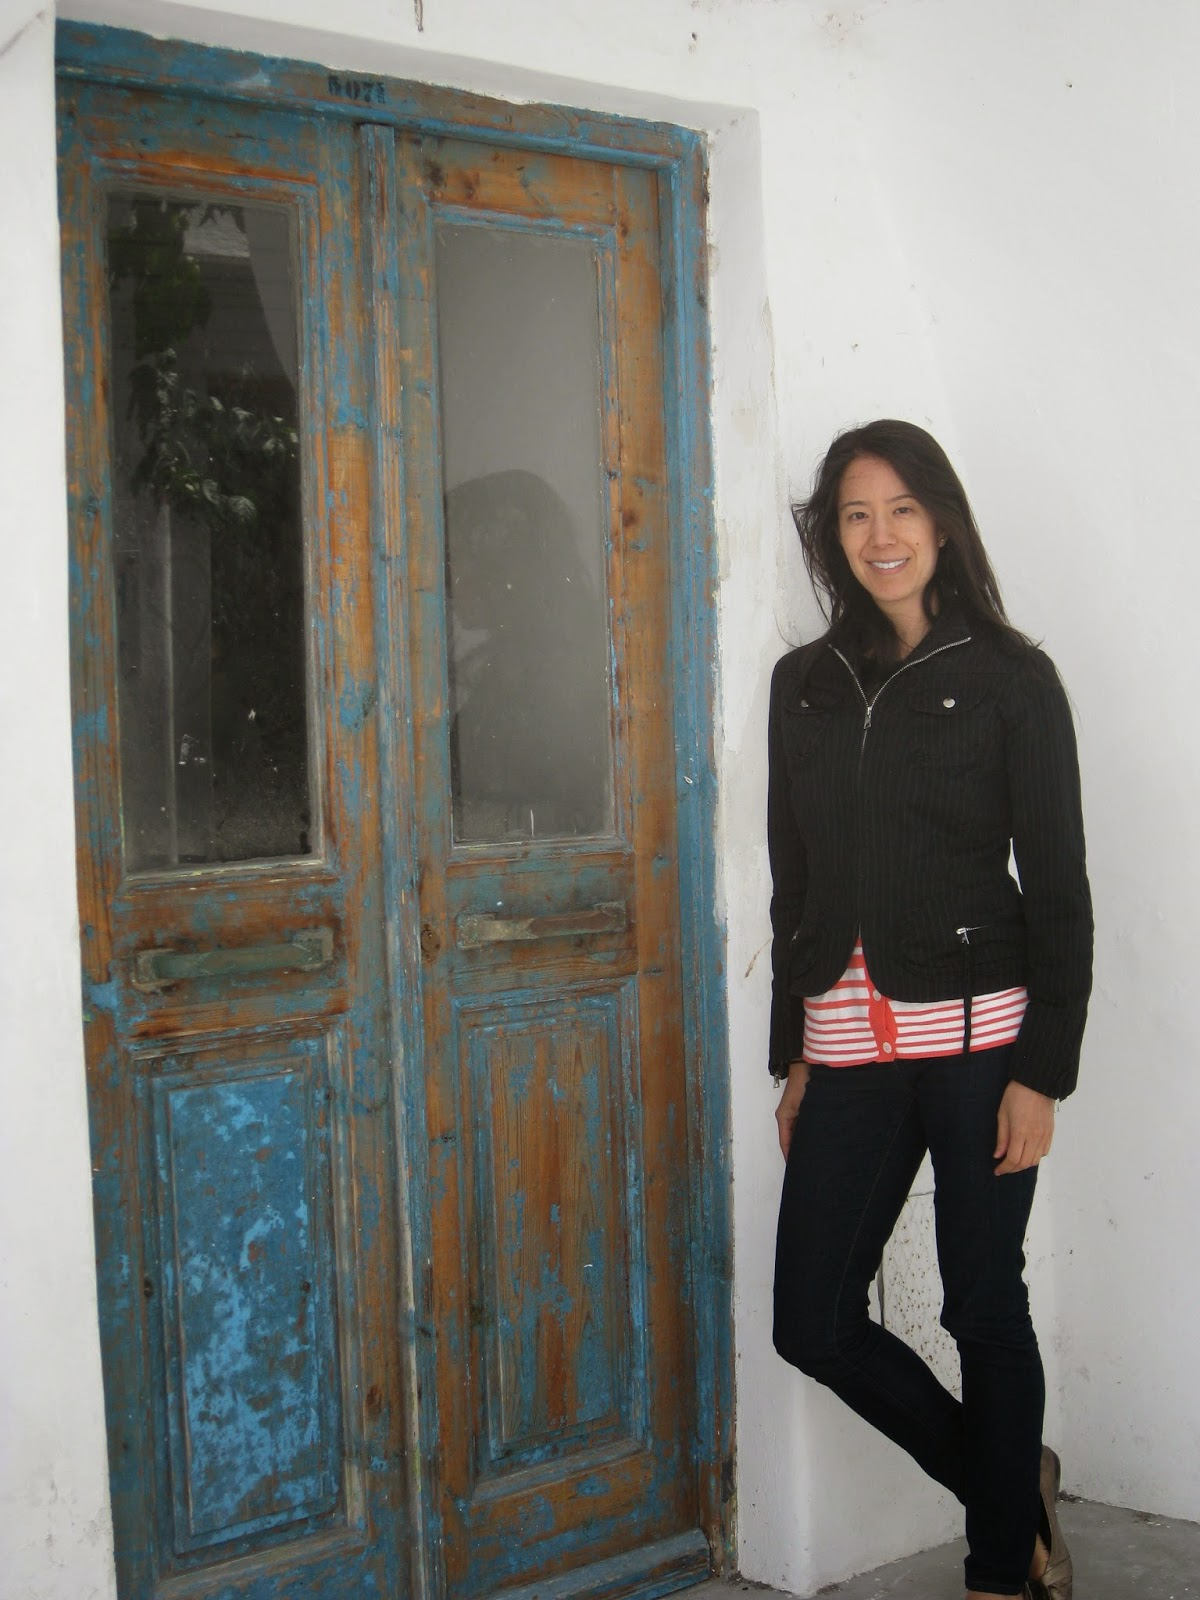 Mykonos - I'm loving those weather-beaten doors